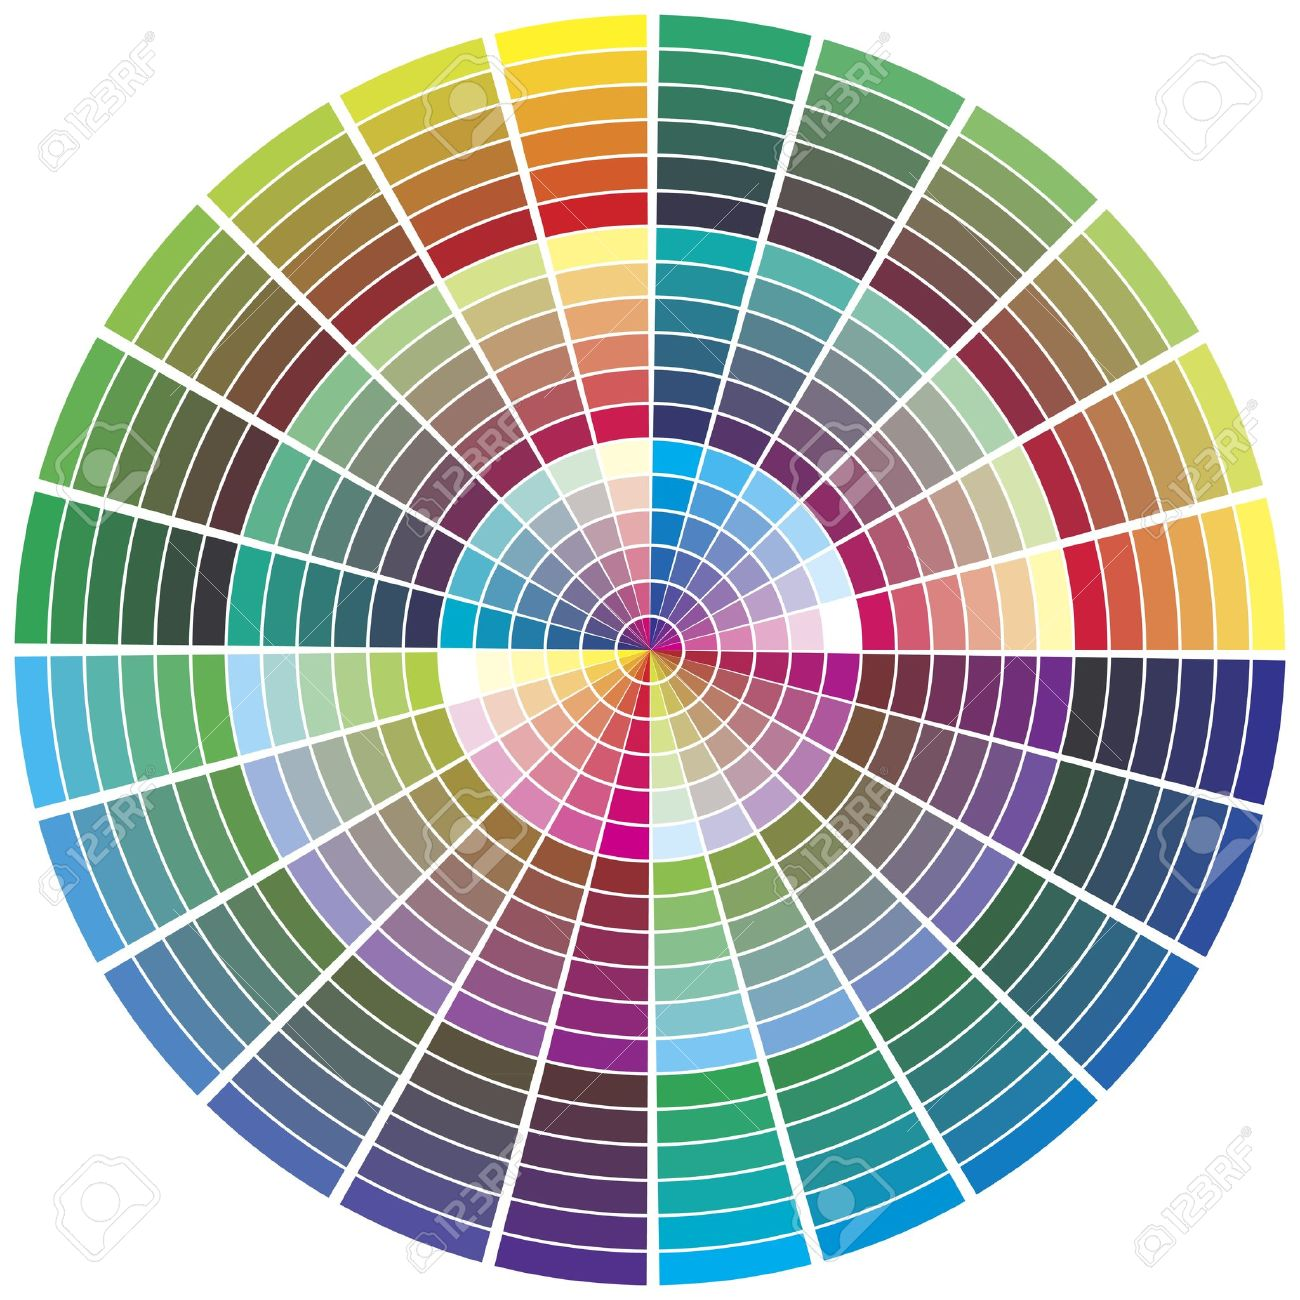 Cmyk rgb stock photos royalty free business images color chart for prepress printing color theory calibration business geenschuldenfo Choice Image